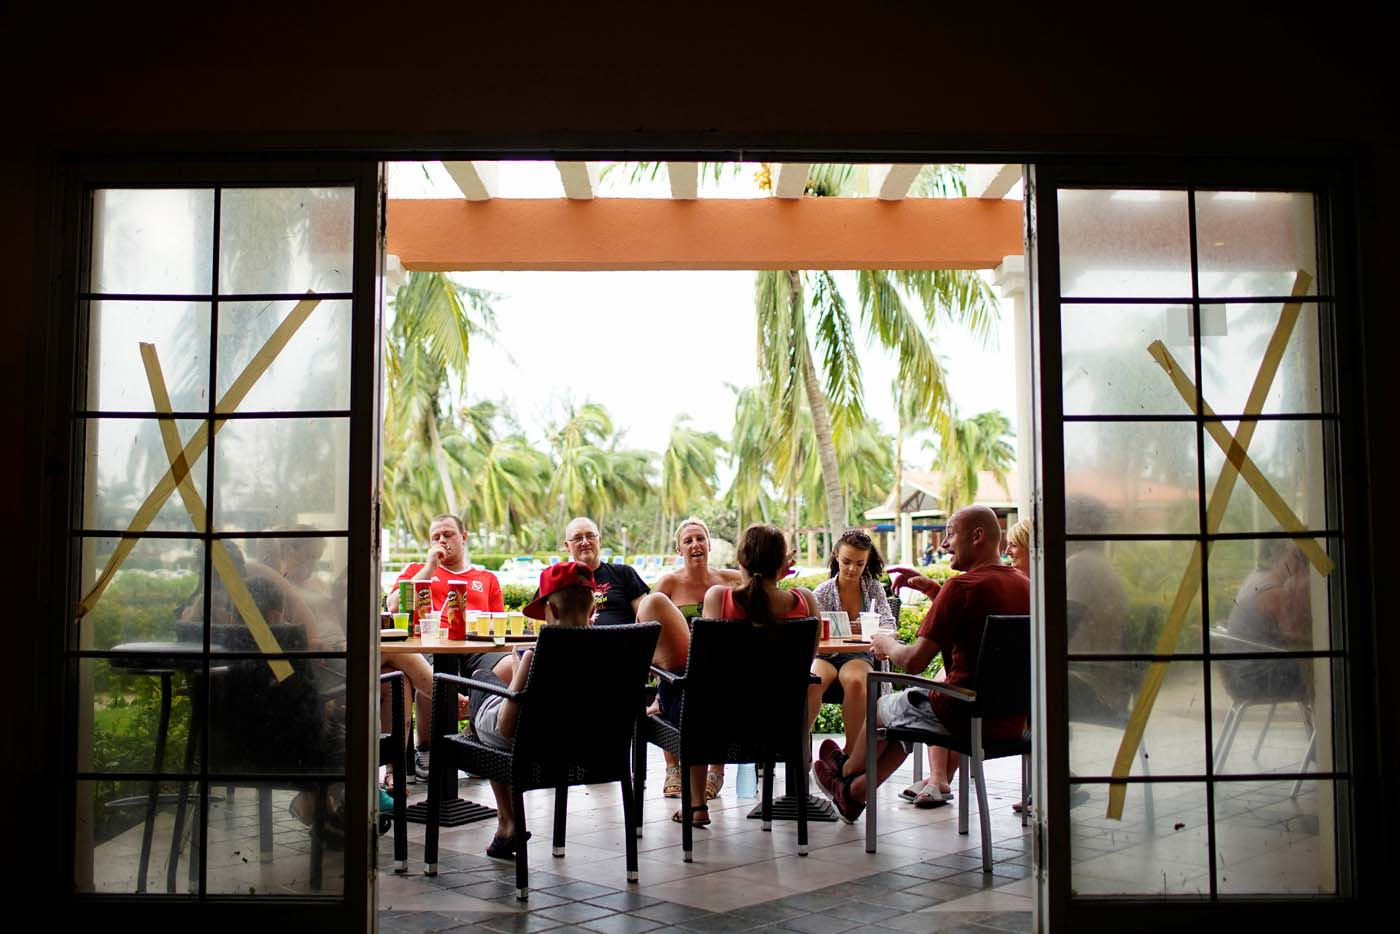 Tourists from England and Scotland have drinks in a hotel a day after the passage of Hurricane Irma in Varadero, Cuba, September 10, 2017. REUTERS/Alexandre Meneghini